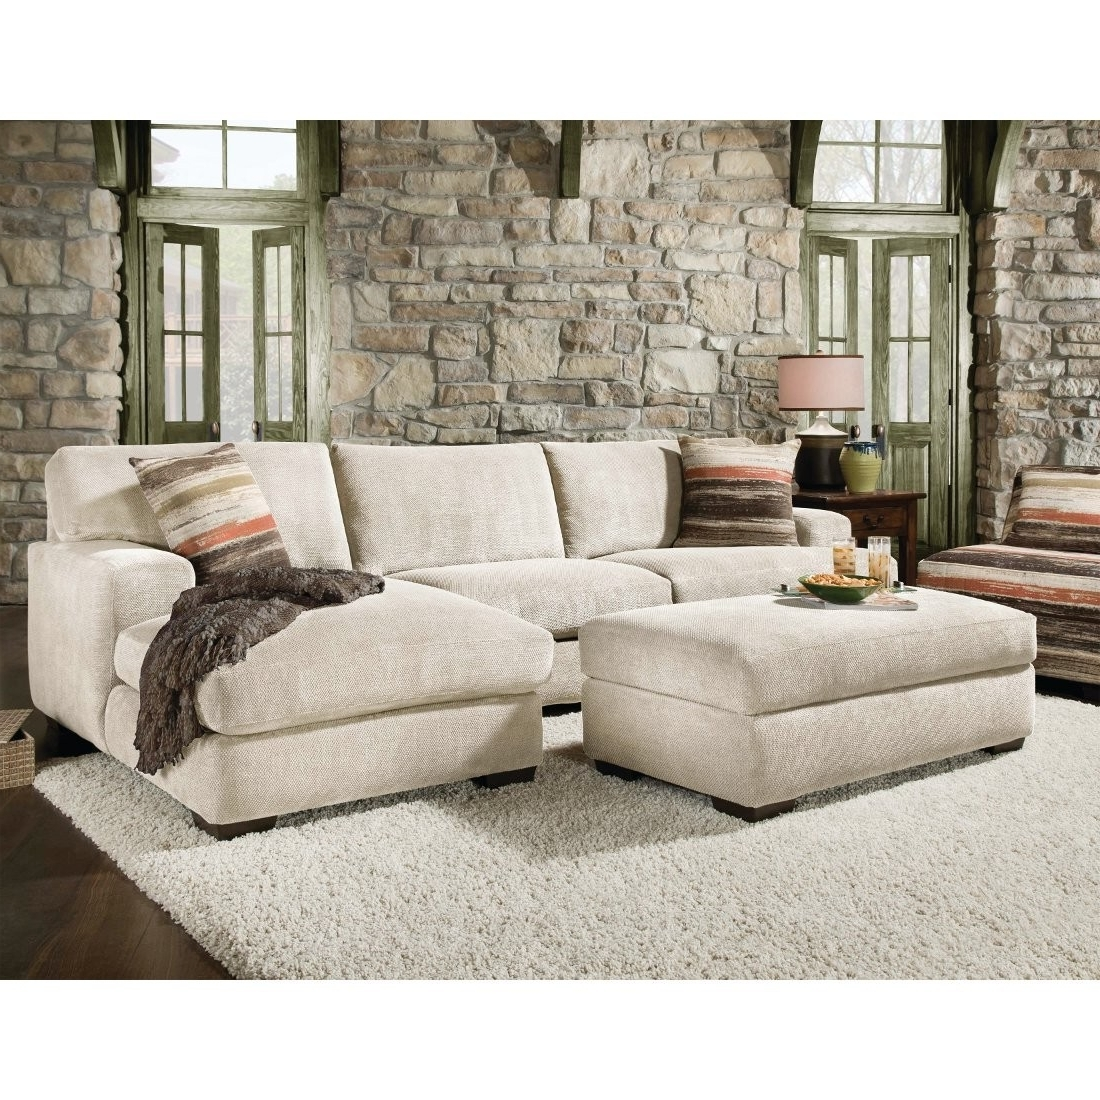 Best And Newest Sectional Sofa Design: Sectional Sofa With Chaise And Ottoman Regarding Sectional Sofas With Chaise And Ottoman (View 2 of 20)